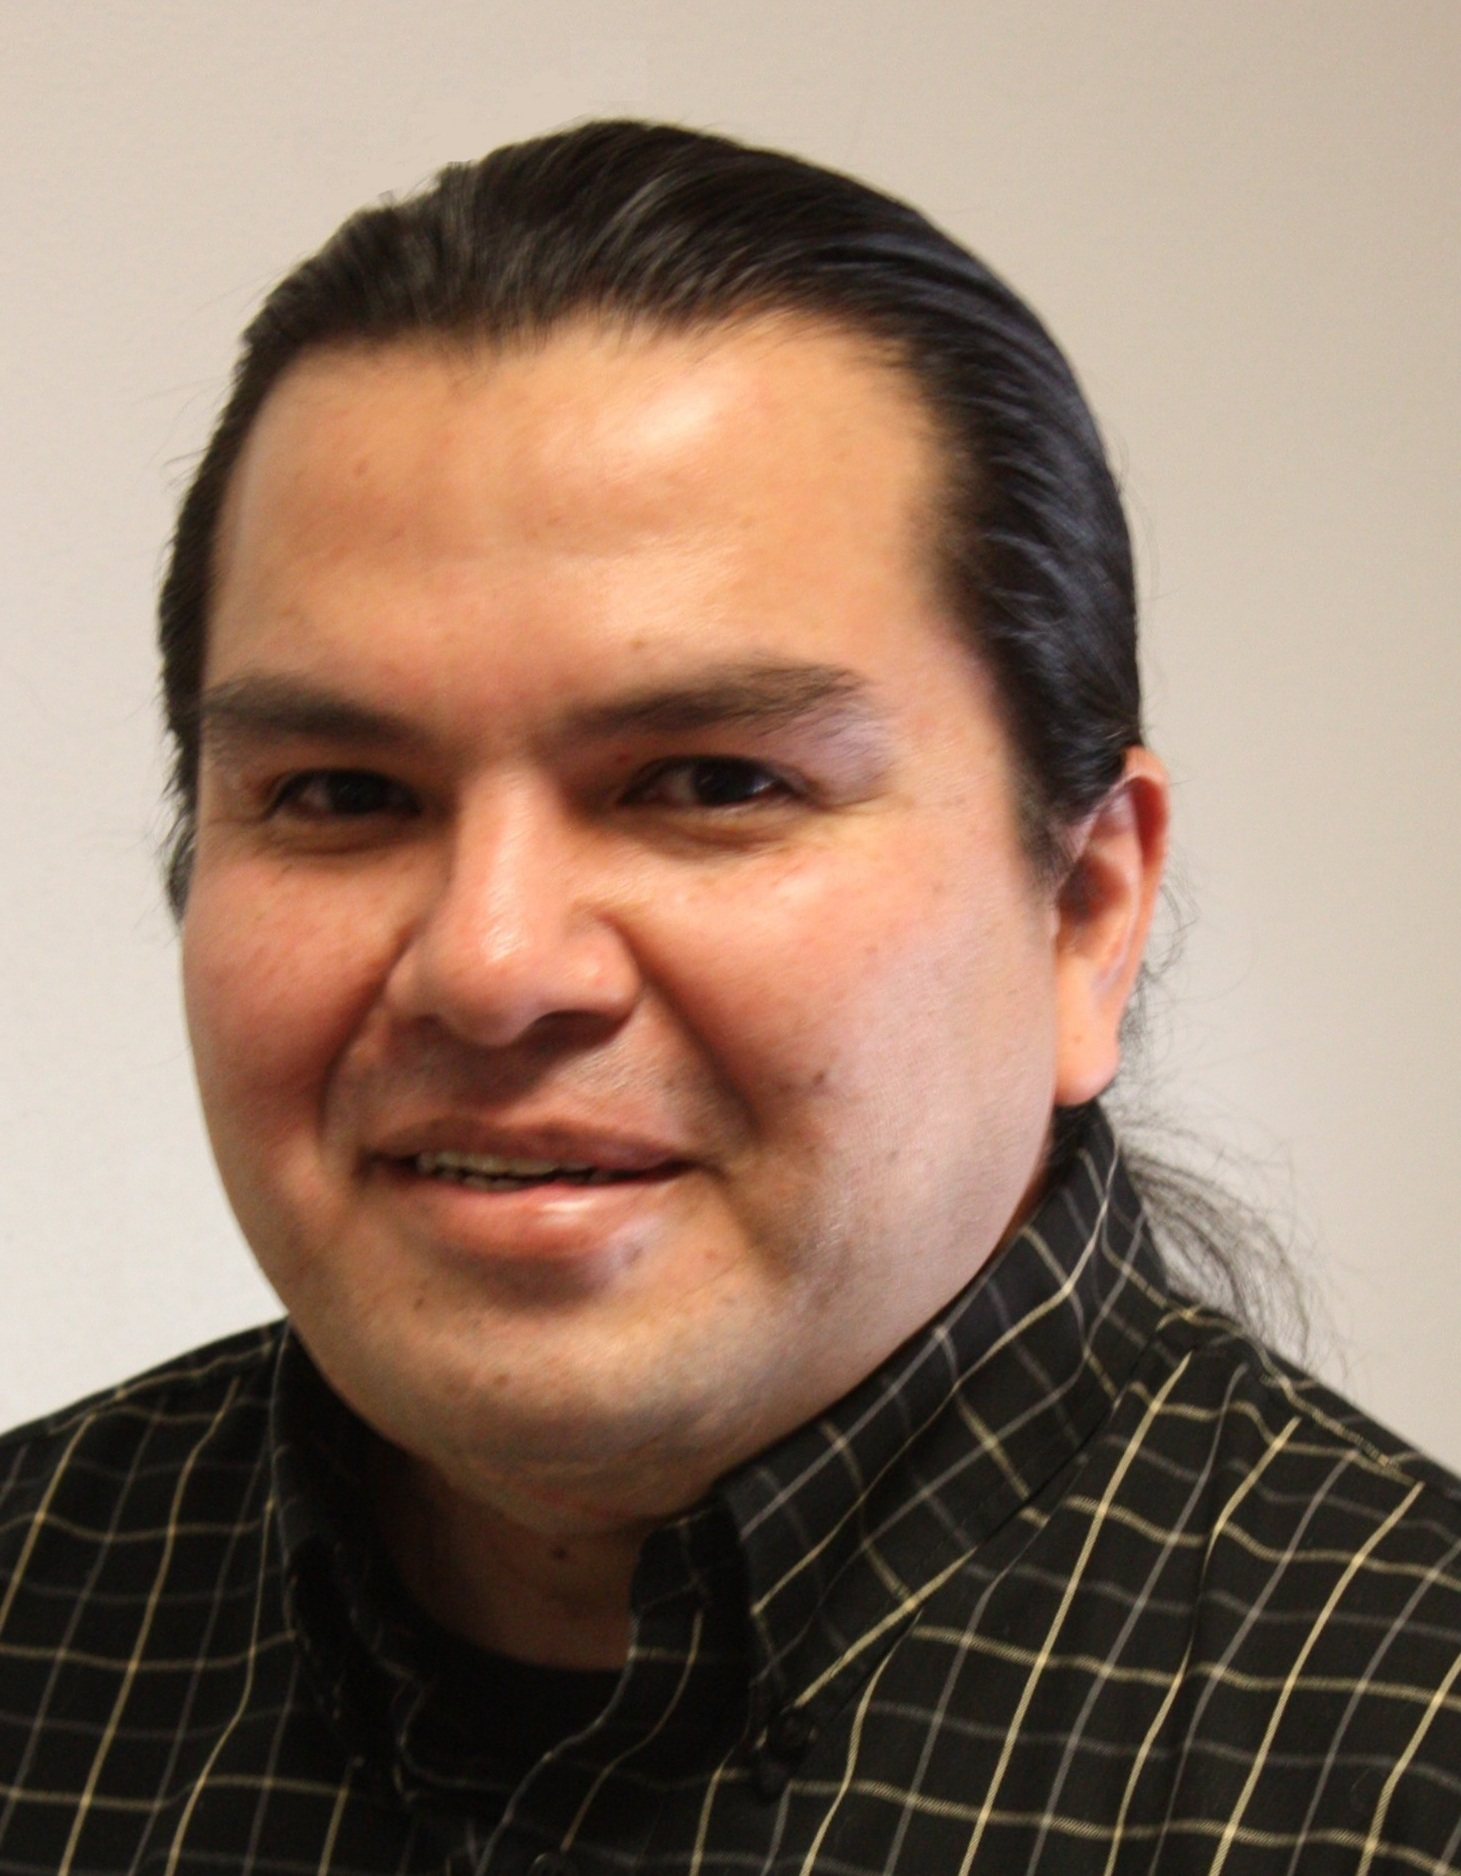 Seattle School Board Director Scott Pinkham - I am endorsing Rebeca with confidence. I trust her to make the right decisions when it comes to protecting and sustaining Native American voice in our schools and curriculum. Qe'ciyew'yew (Thank you) for your support of curriculum that is inclusive of all perspectives.